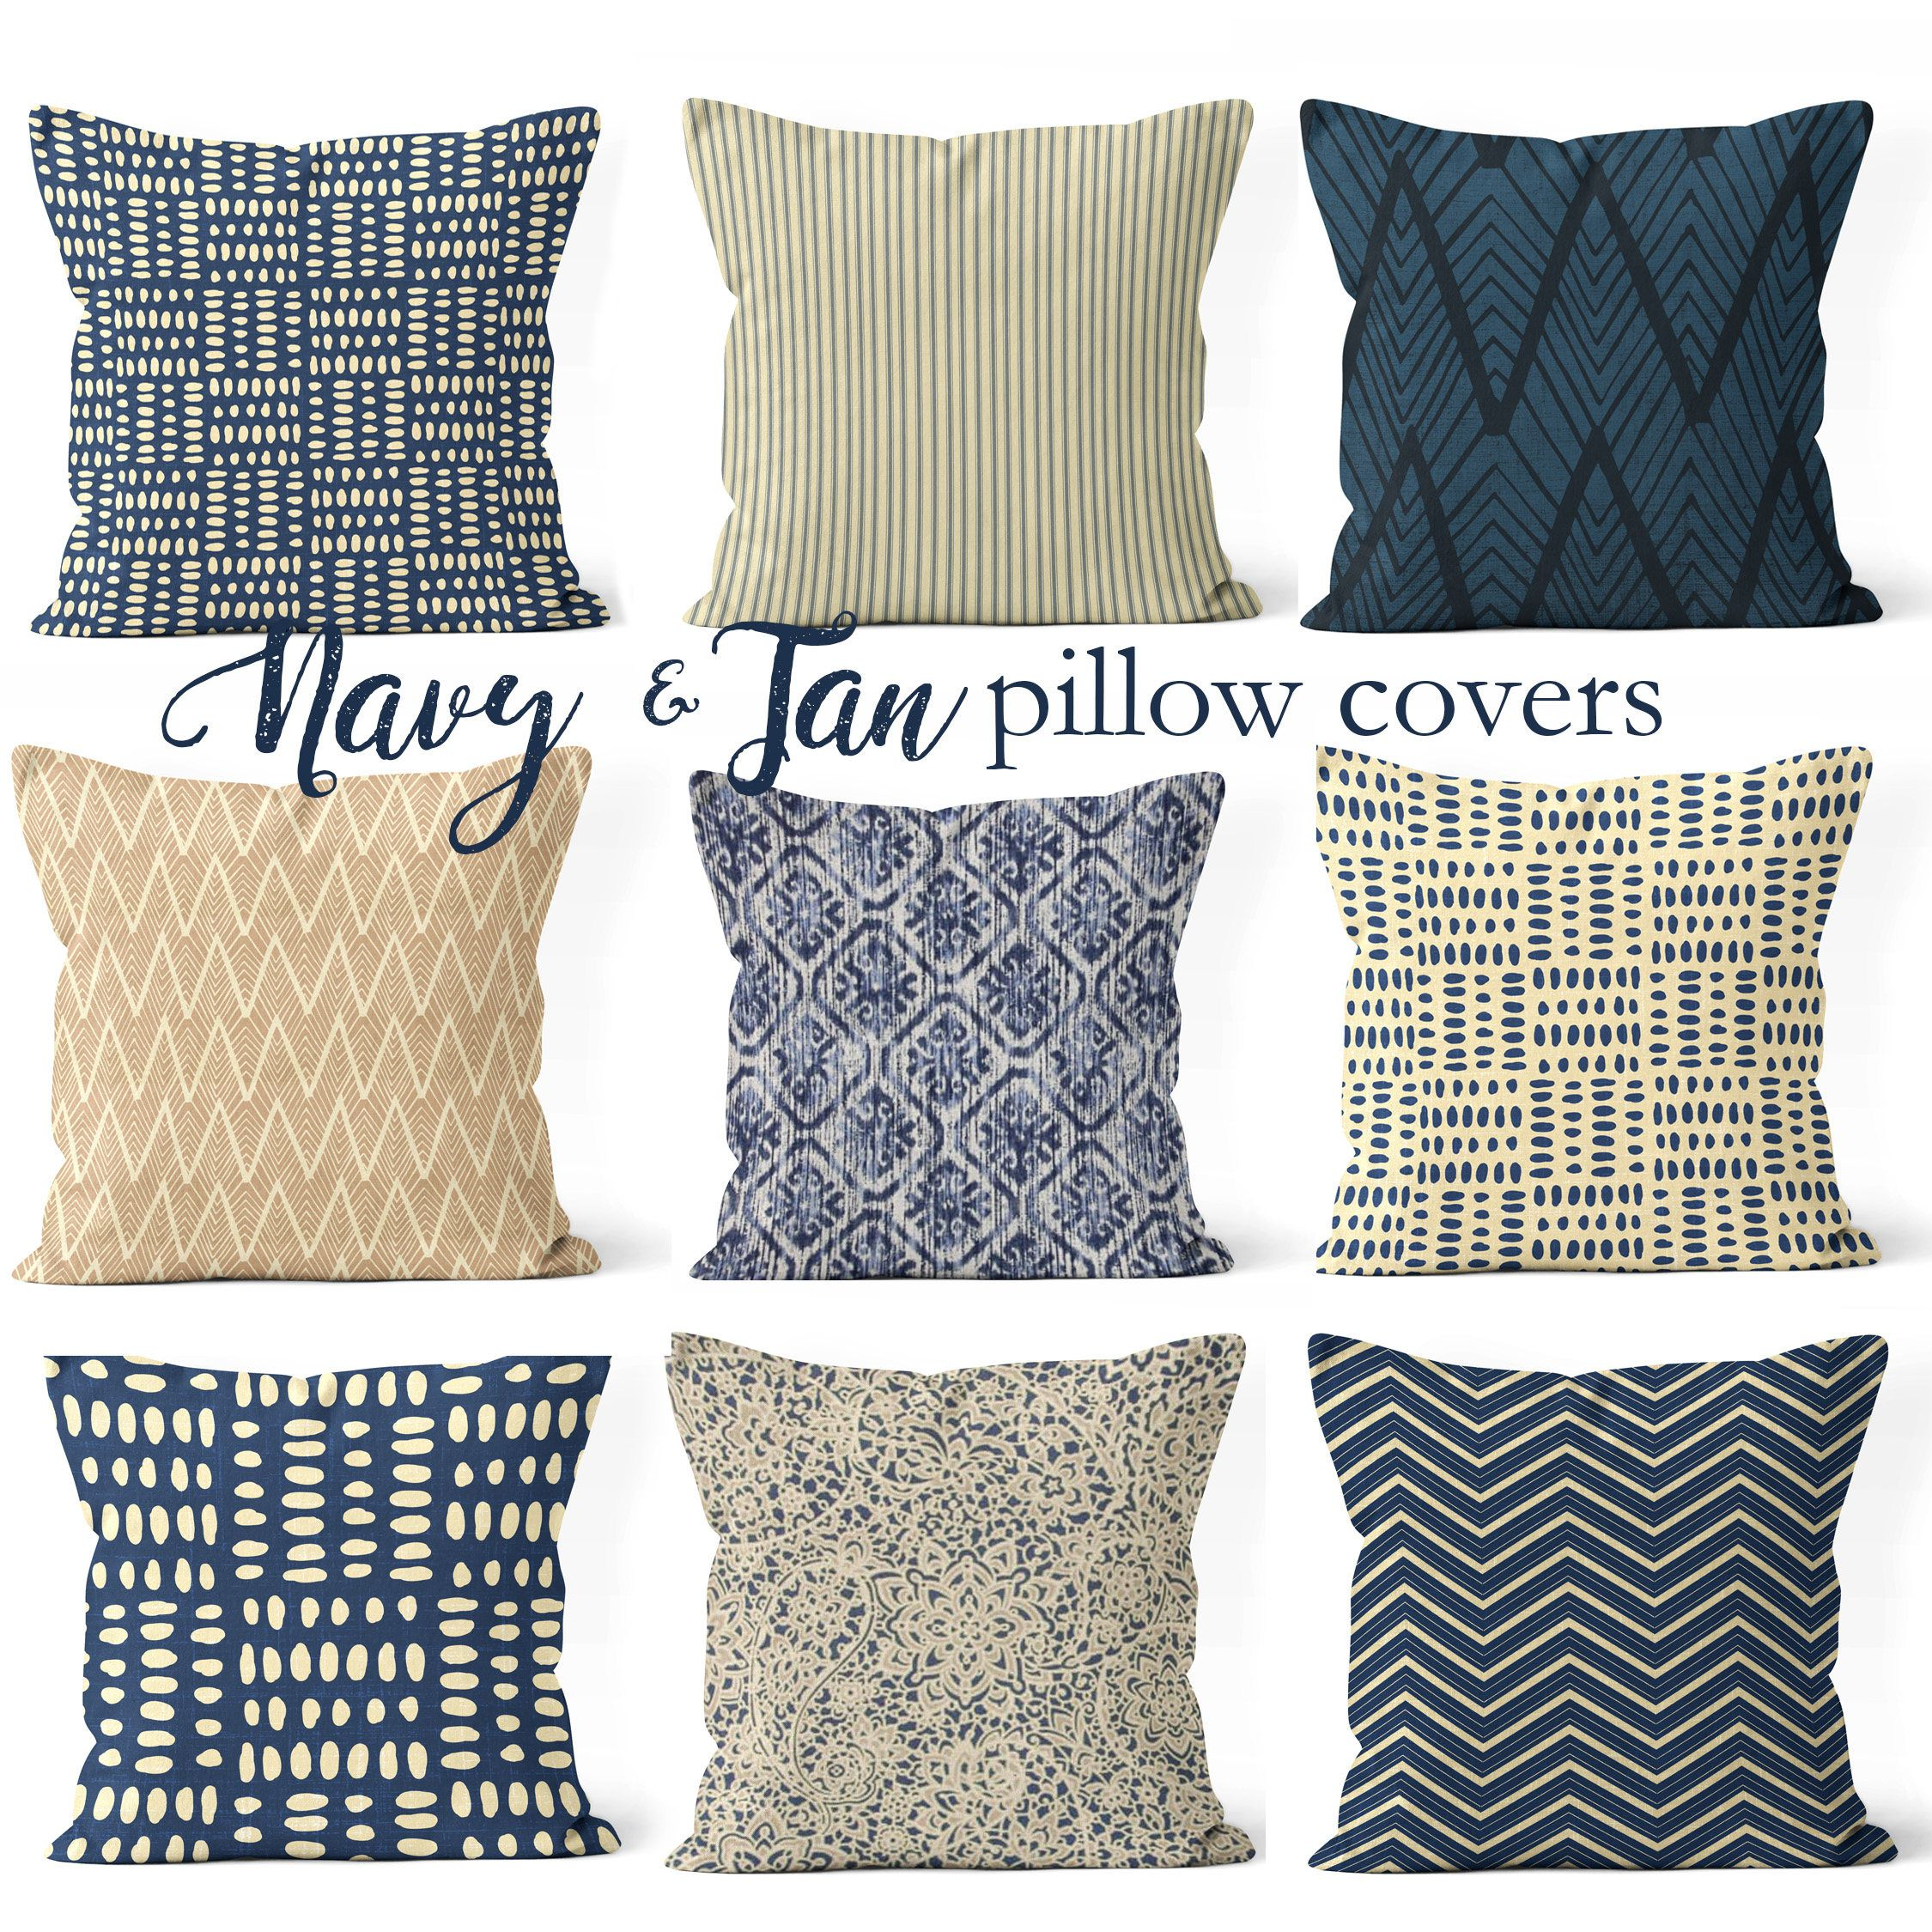 Throw Pillow Cover Set Mix And Match Pillow 14 X14 16 X16 18x18 Or 20 X20 Tan And Navy Blue Pillow Covers For Pillows Navy Blue Pillows Blue Pillow Covers